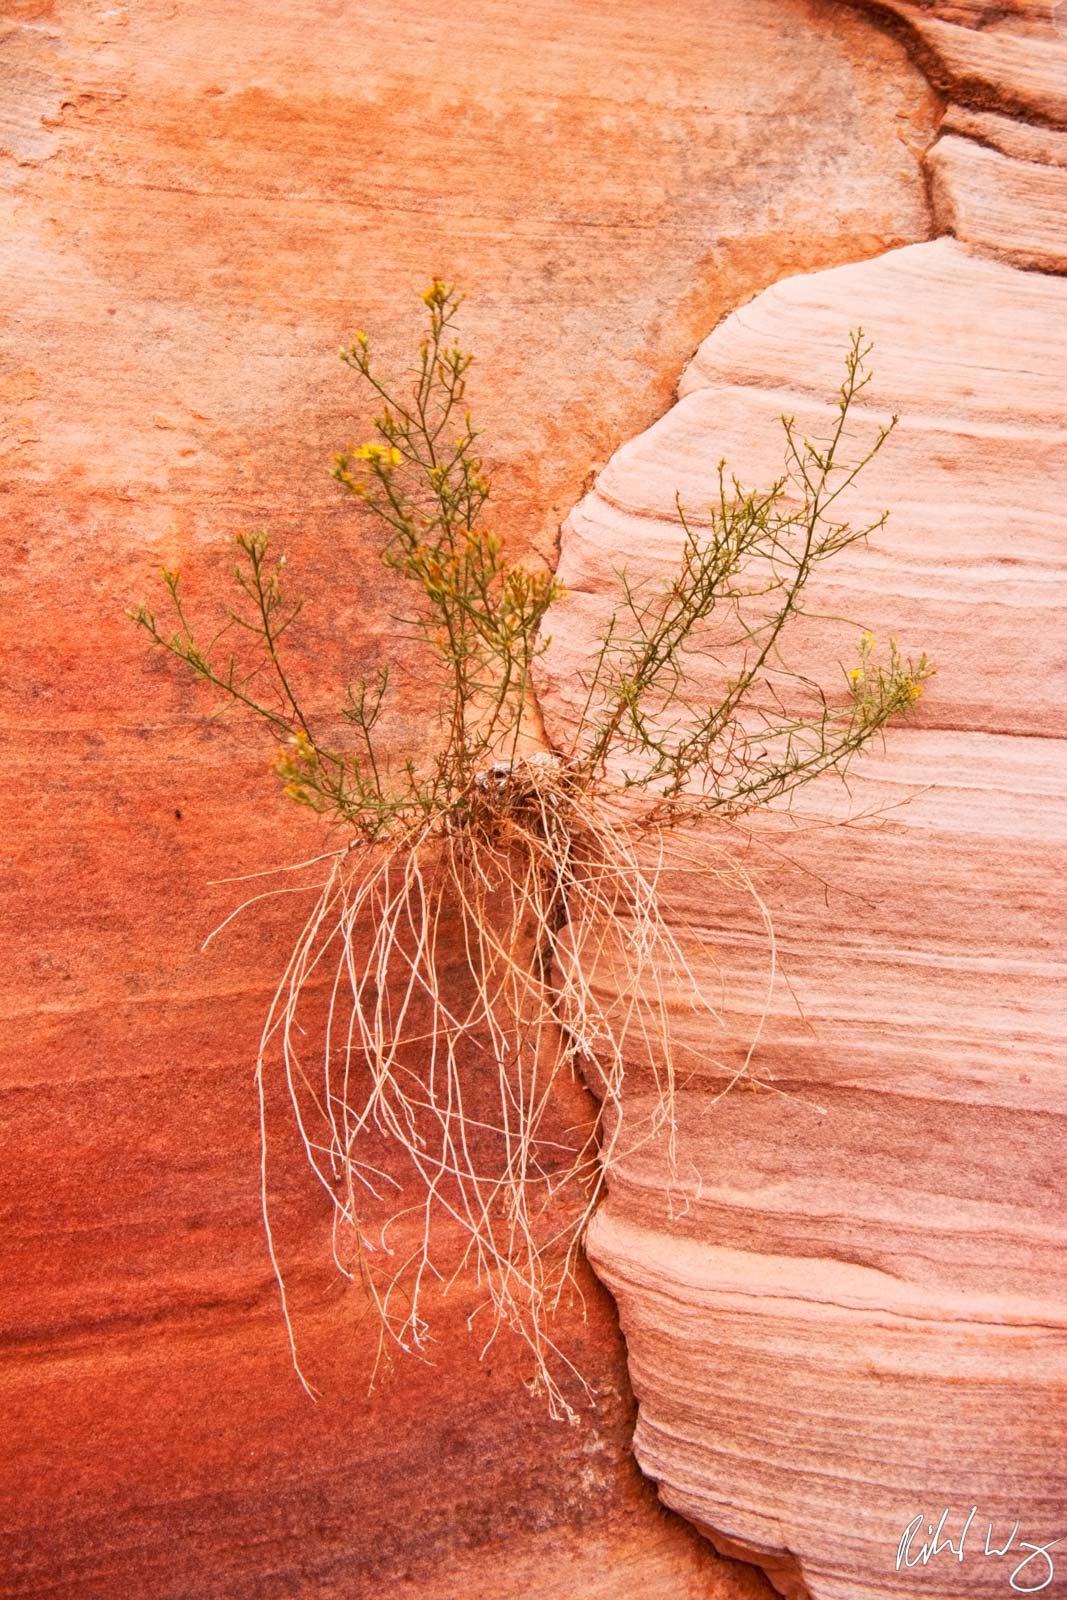 Flowering Plant Growing from Crack in Sandstone, Valley of Fire State Park, Nevada, Photo, photo